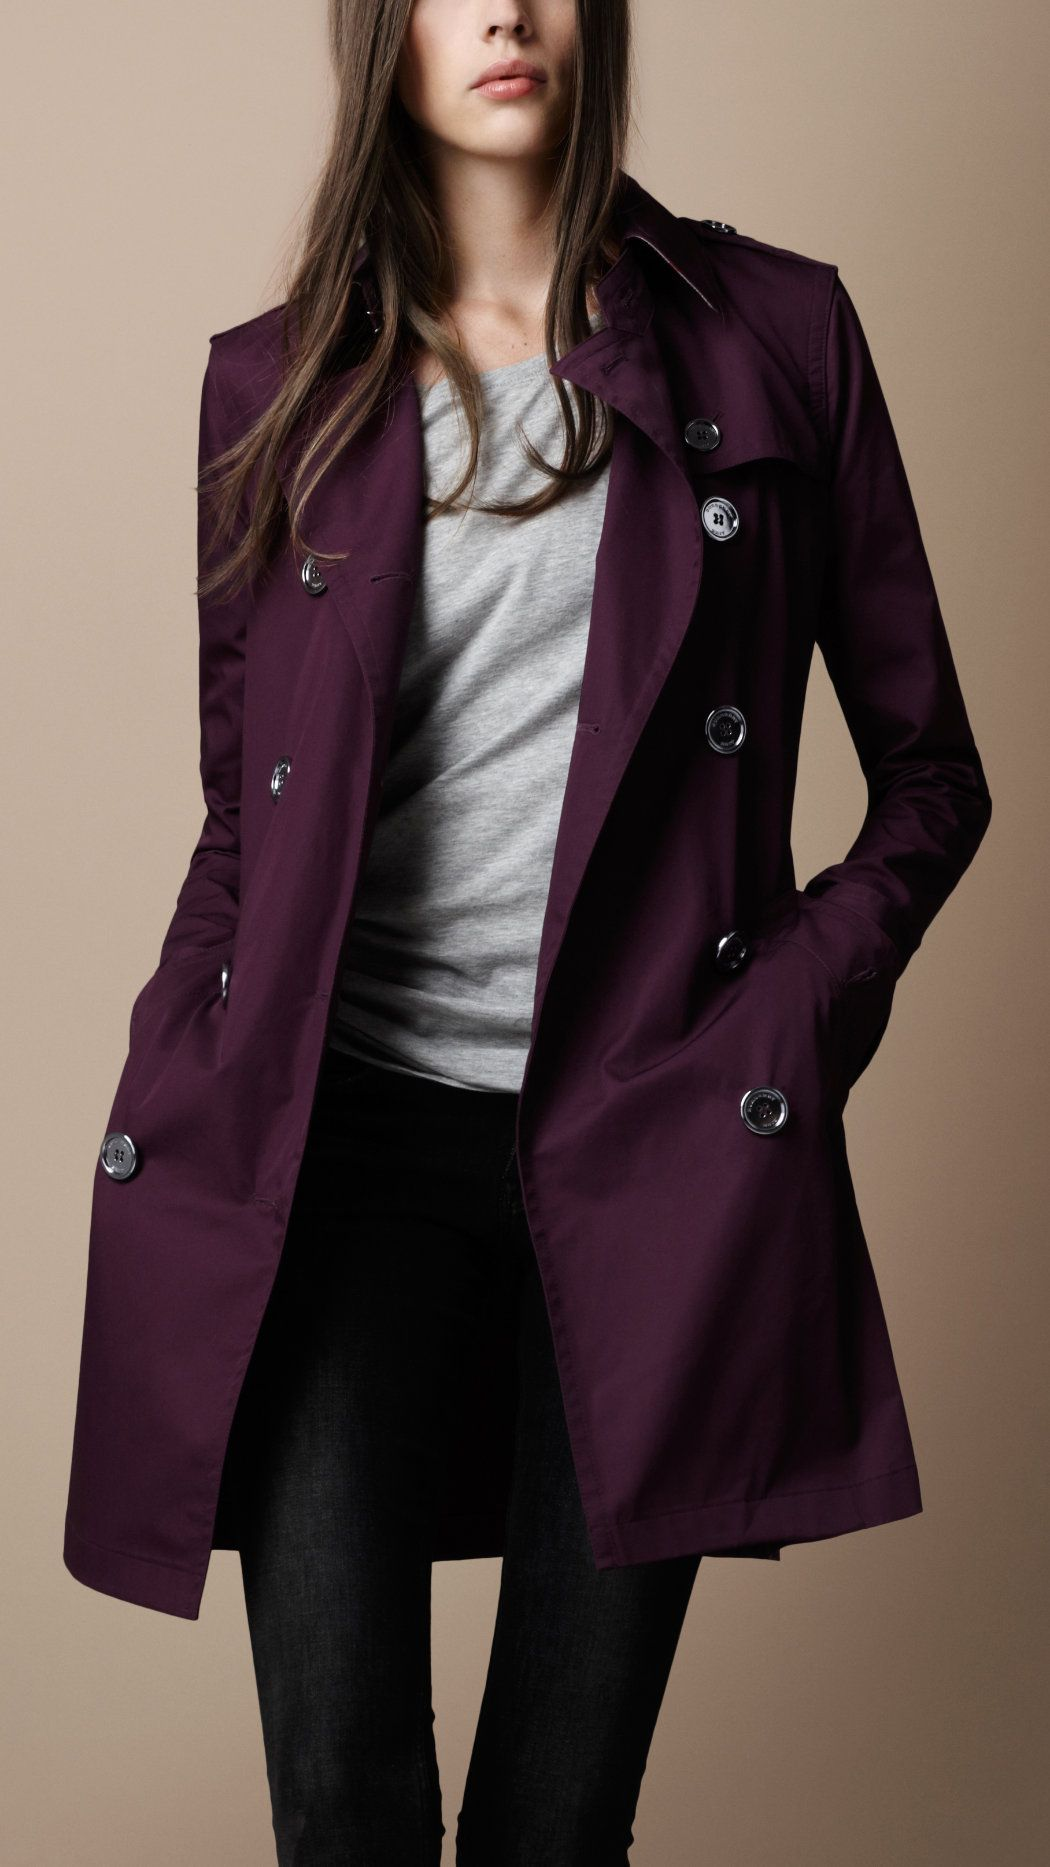 246dcb7904 Burberry Washed Cotton Trench Coat in Plum | The Color Purple ...